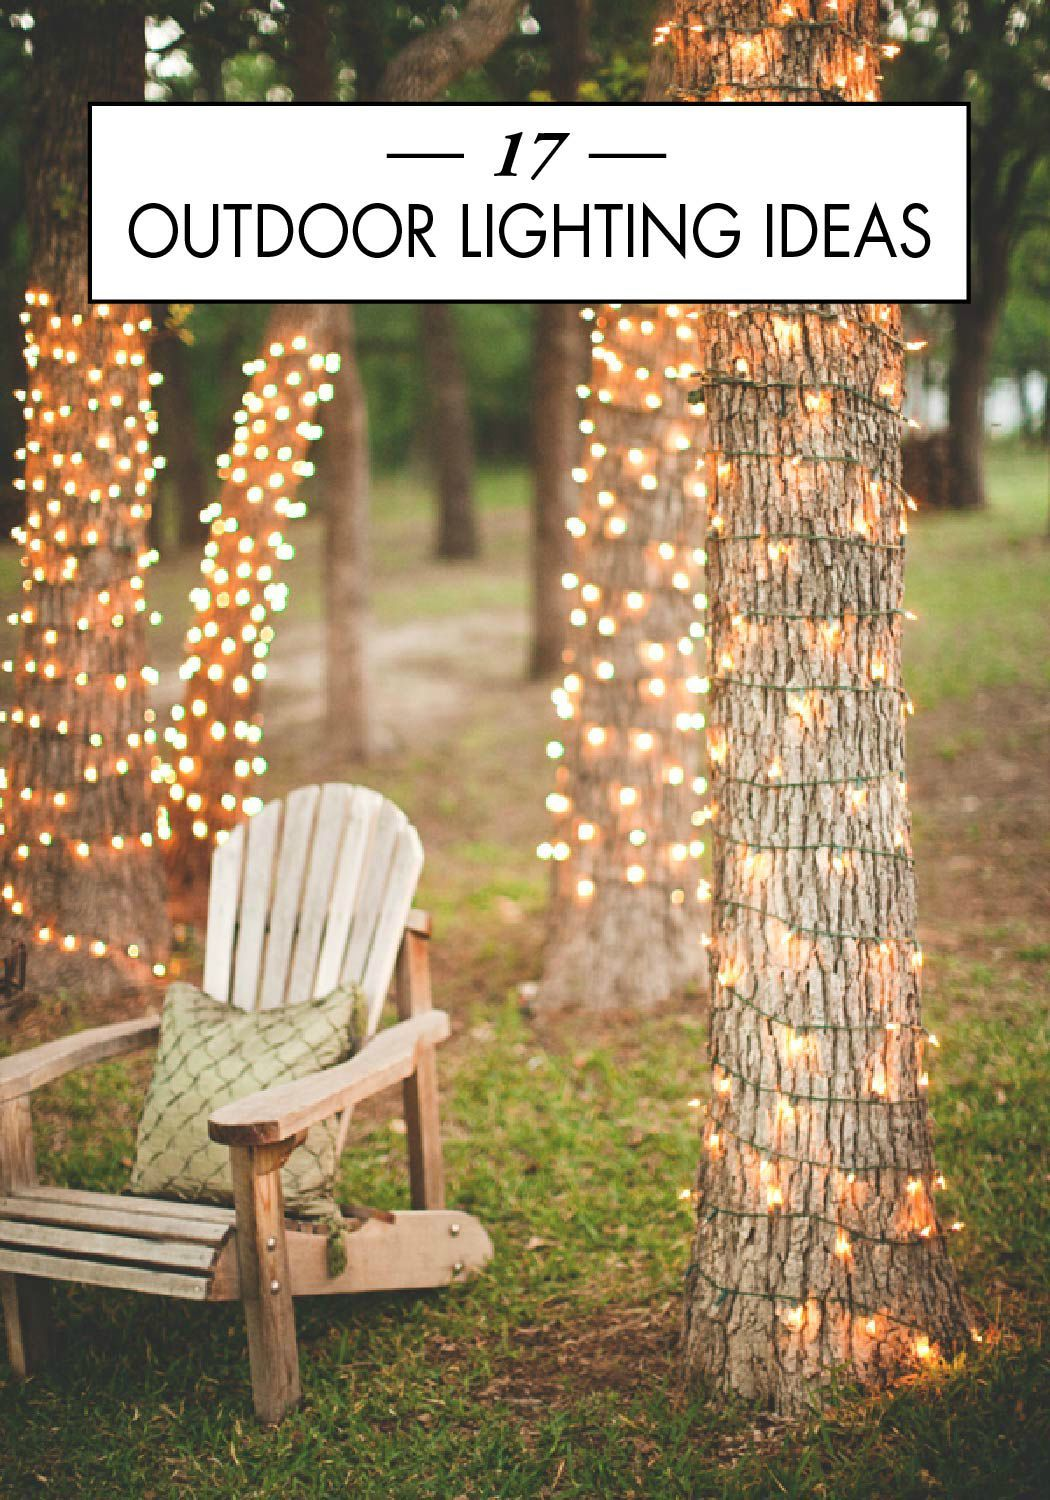 Use Some Of These 17 Beautiful Outdoor Lighting Ideas To Keep Your